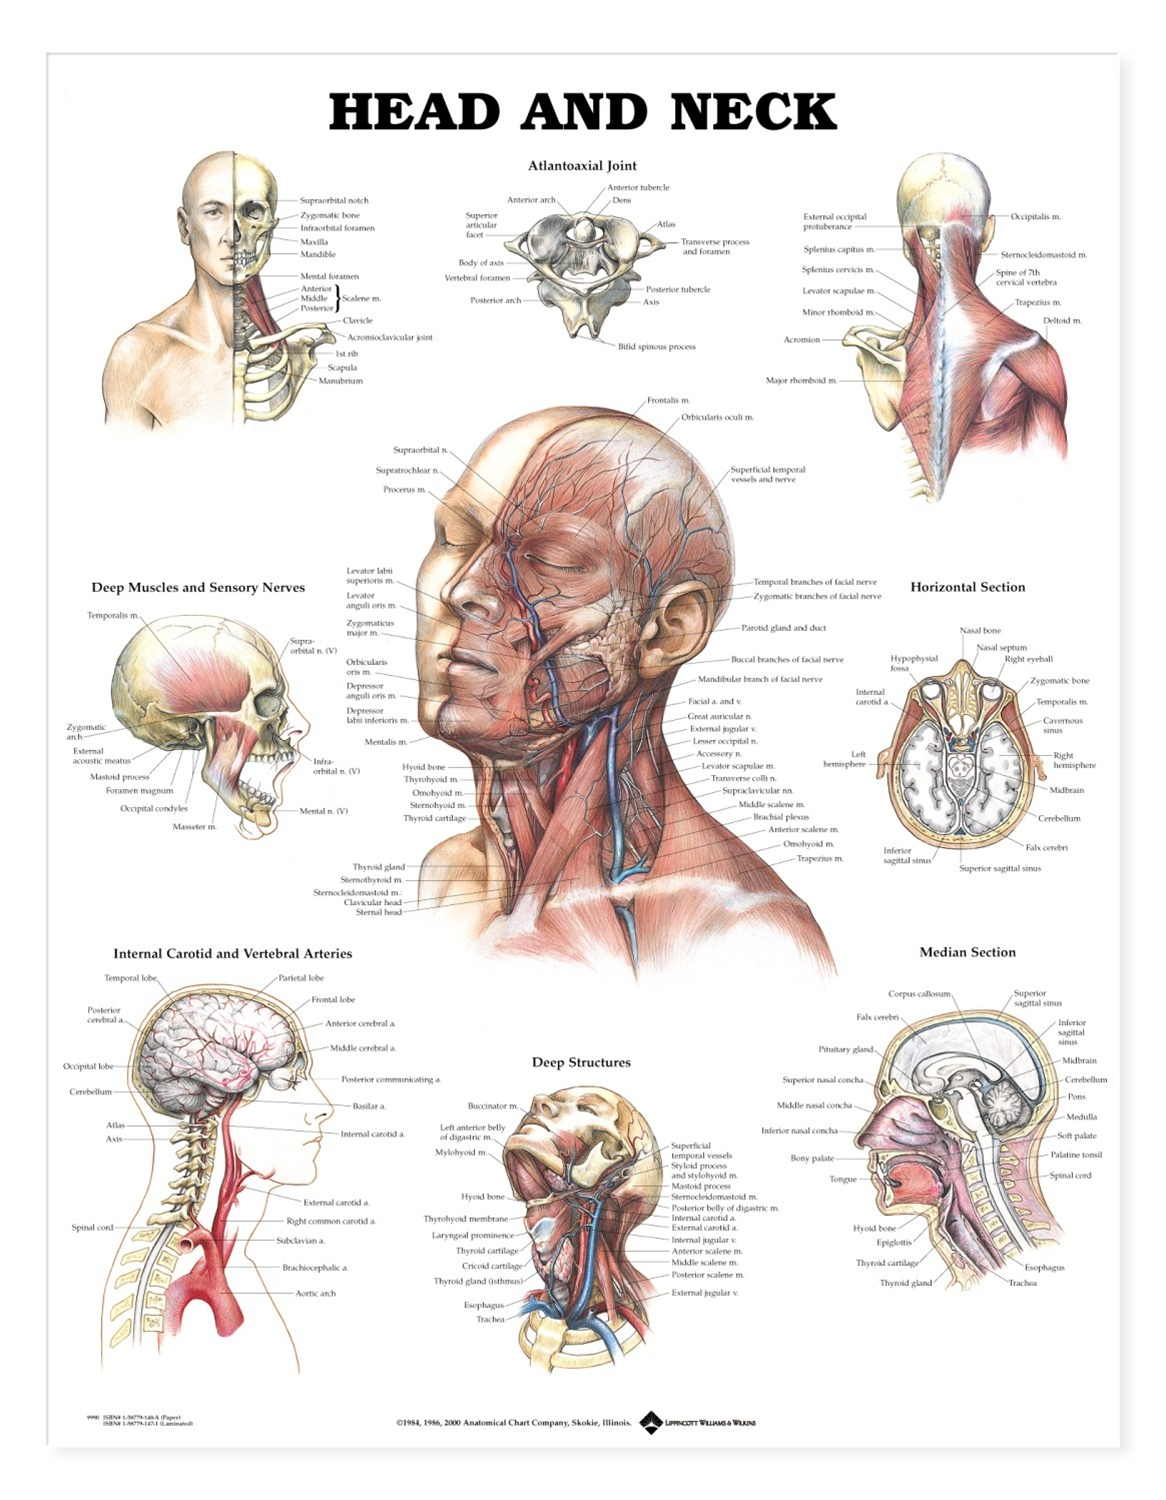 Head And Neck Anatomical Chart Anatomy Models And Anatomical Charts